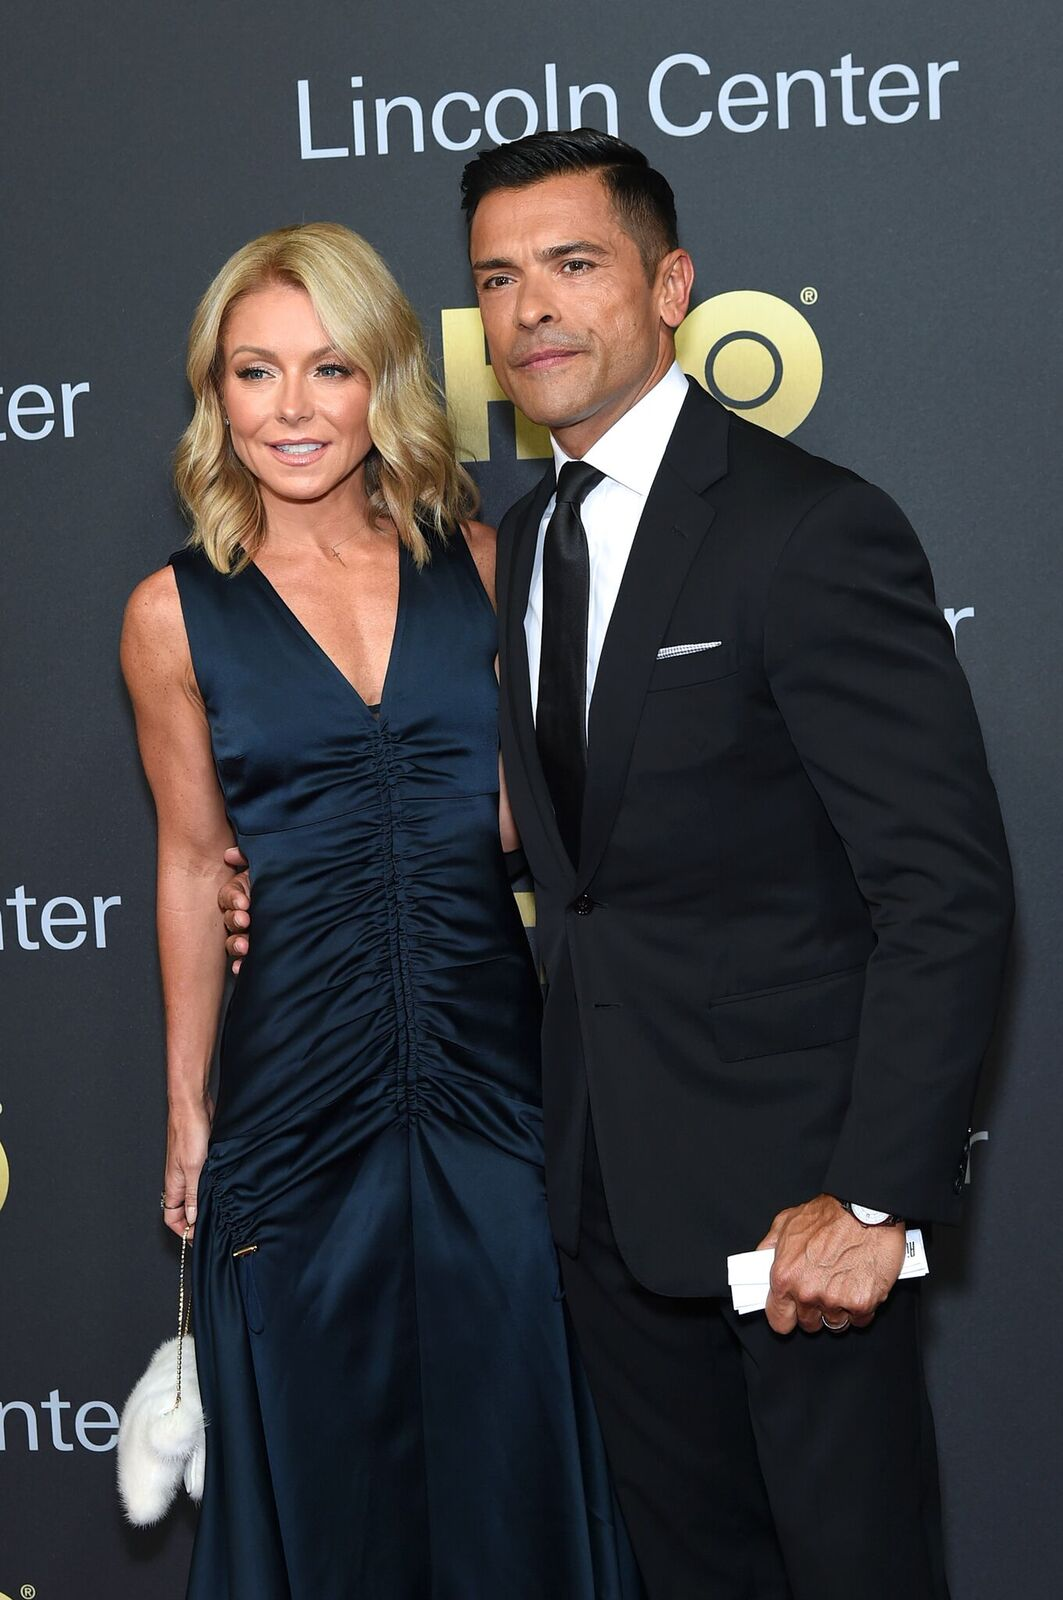 Kelly Ripa and Mark Consuelos at the Lincoln Center's American Songbook Gala on May 29, 2018, in New York City | Photo: Getty Images